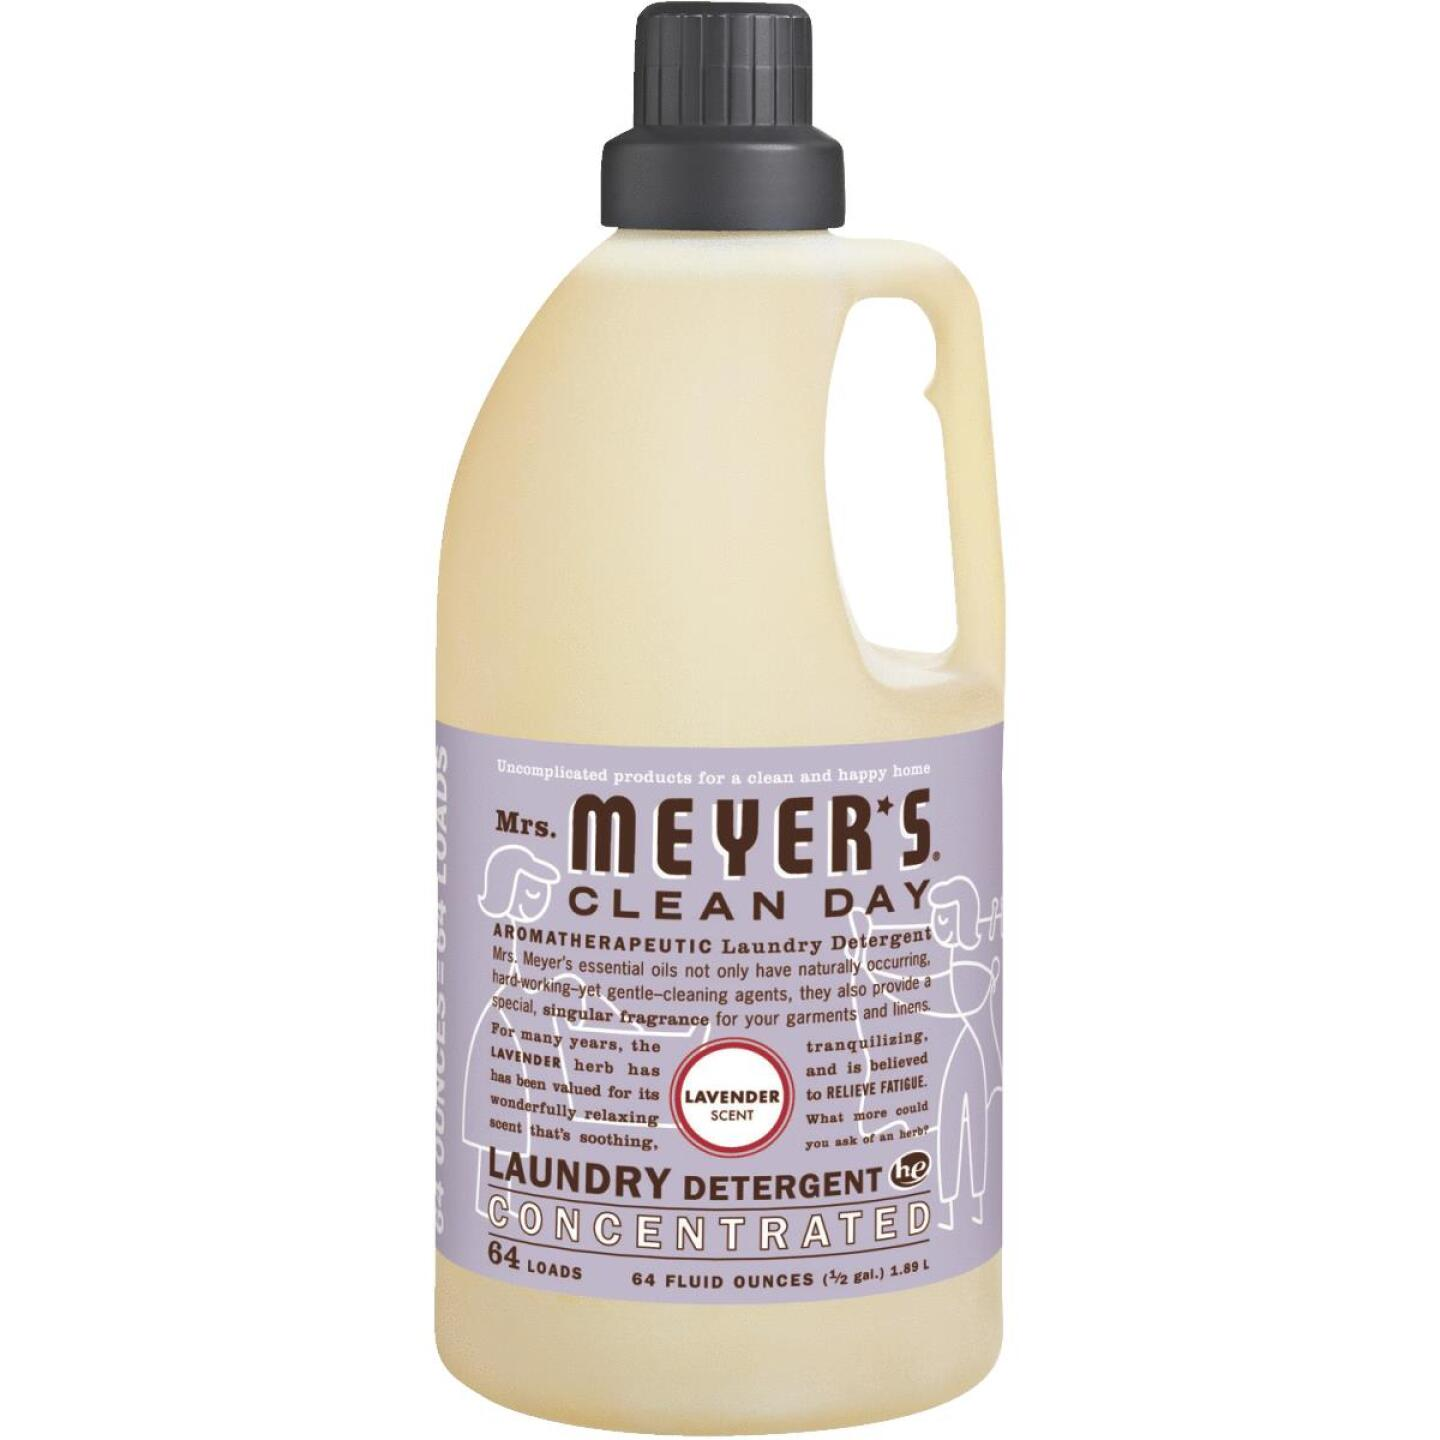 Mrs Meyer's Clean Day 64 Oz. Lavender Concentrated Laundry Detergent Image 1